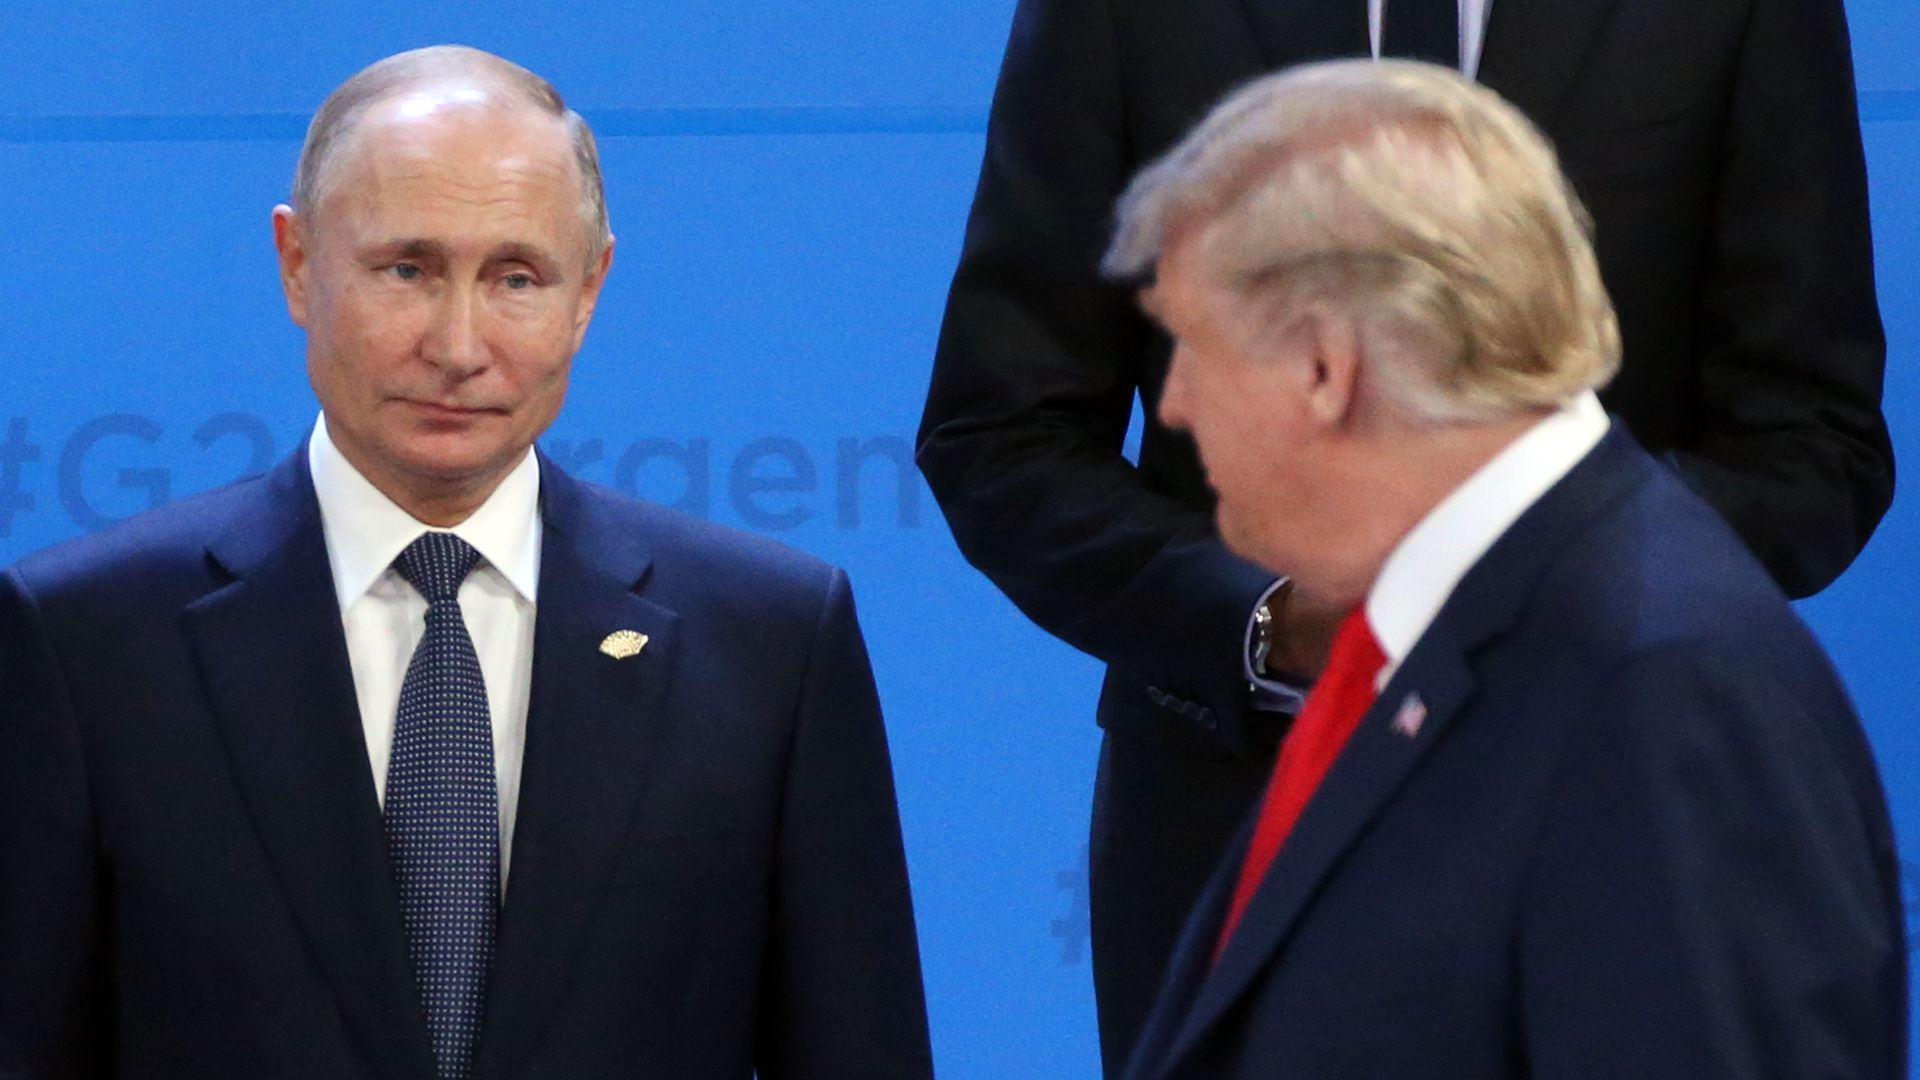 WaPo: Trump has sought to hide details of conversations with Putin from admin officials